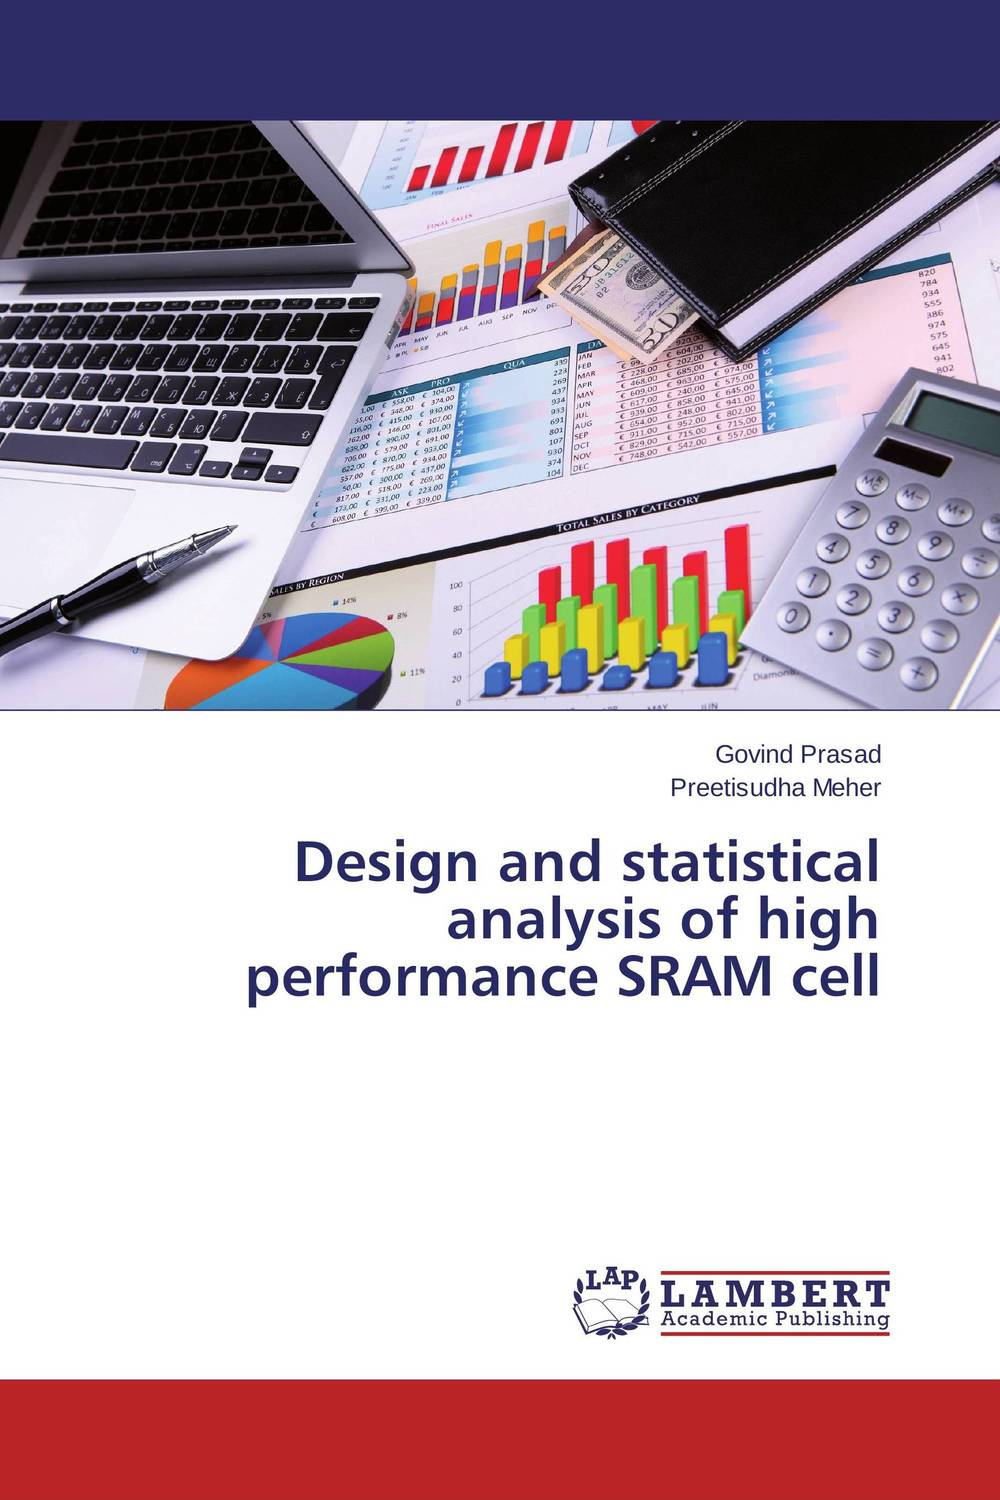 Design and statistical analysis of high performance SRAM cell steven bragg m cost reduction analysis tools and strategies